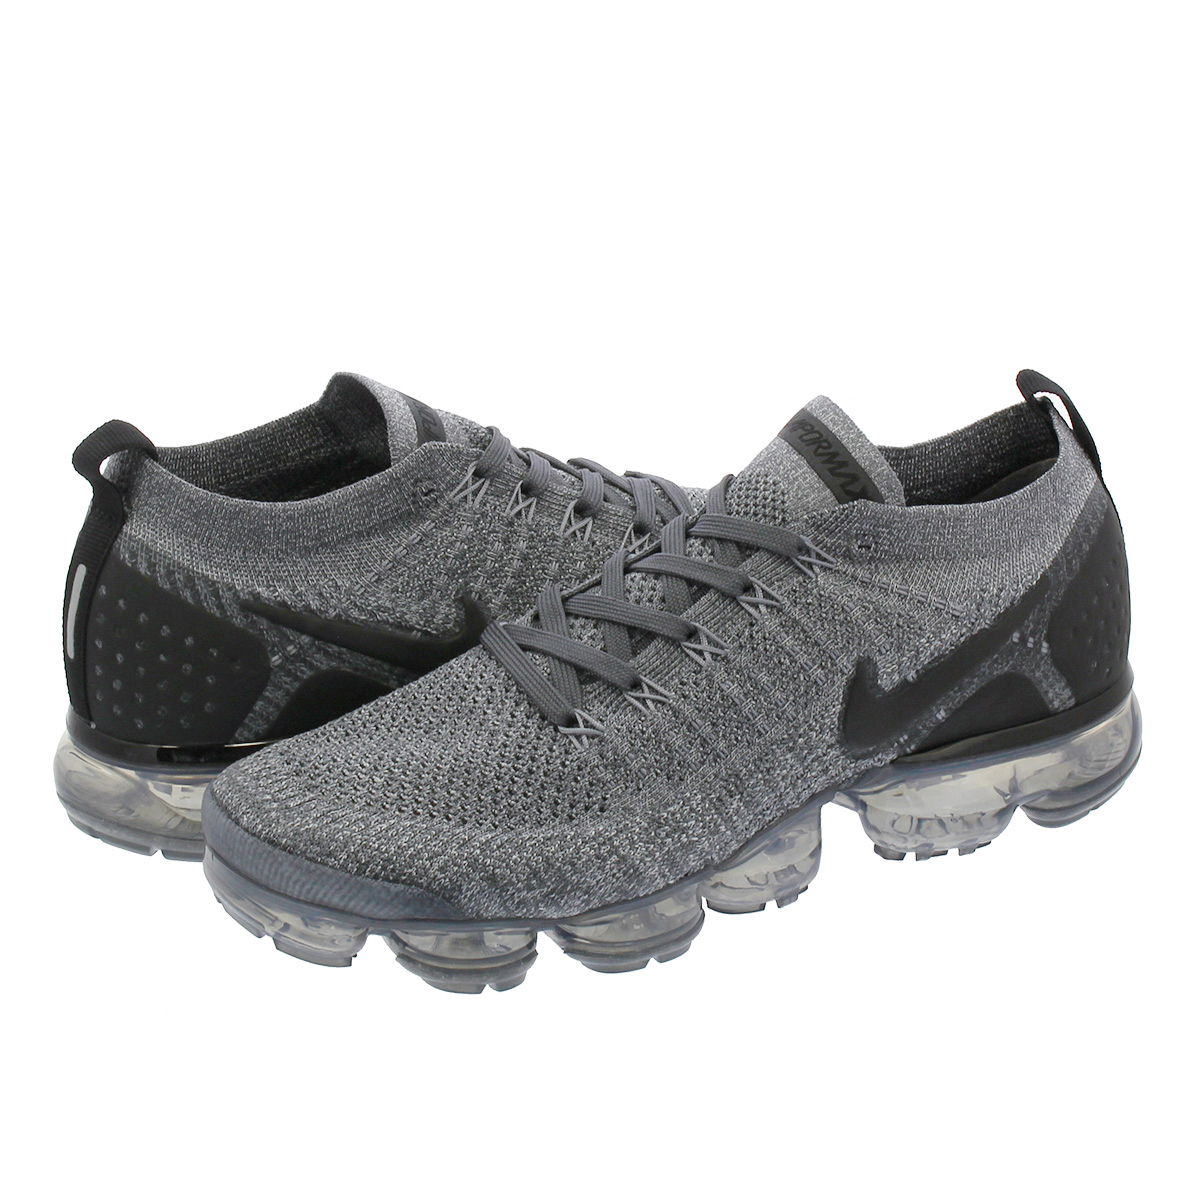 low priced c8bcf 33747 NIKE AIR VAPORMAX FLYKNIT 2 Nike vapor max fried food knit 2 DARK  GREY/WHITE/WOLF GREY/BLACK 942,842-002